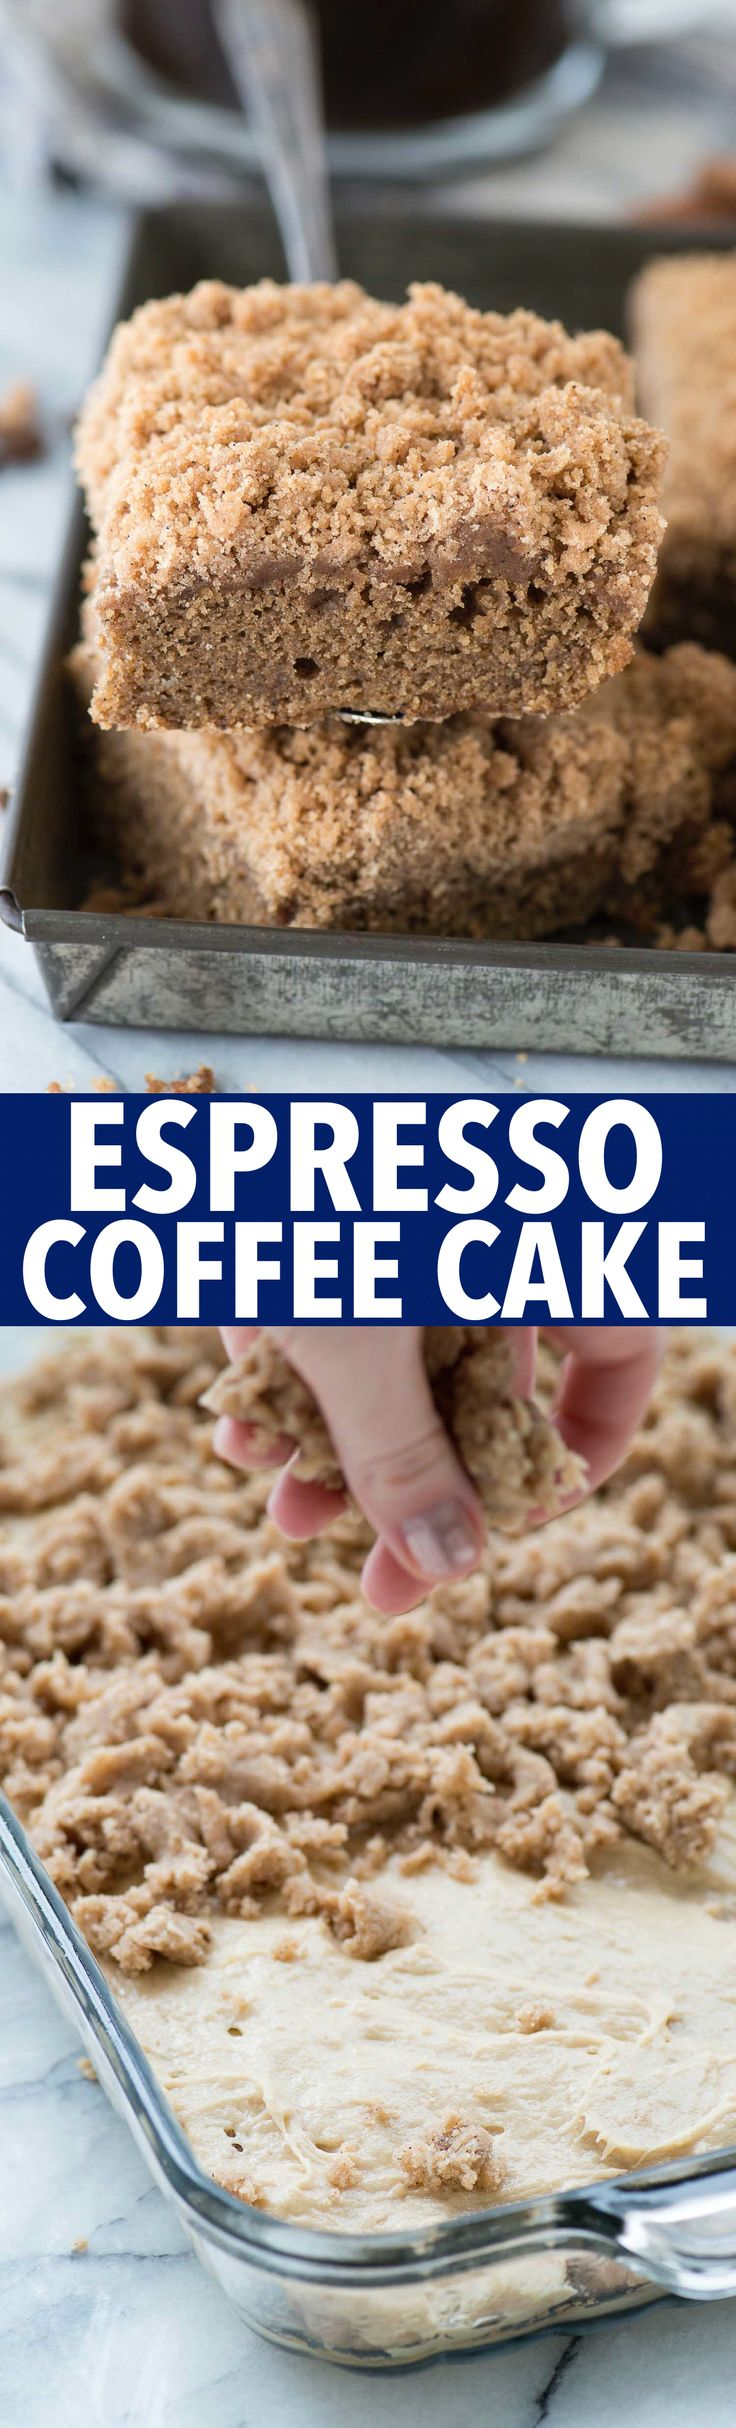 Our favorite espresso coffee cake with mile high crumb! With brewed espresso and ground espresso in the batter, this coffee cake actually tastes like coffee!